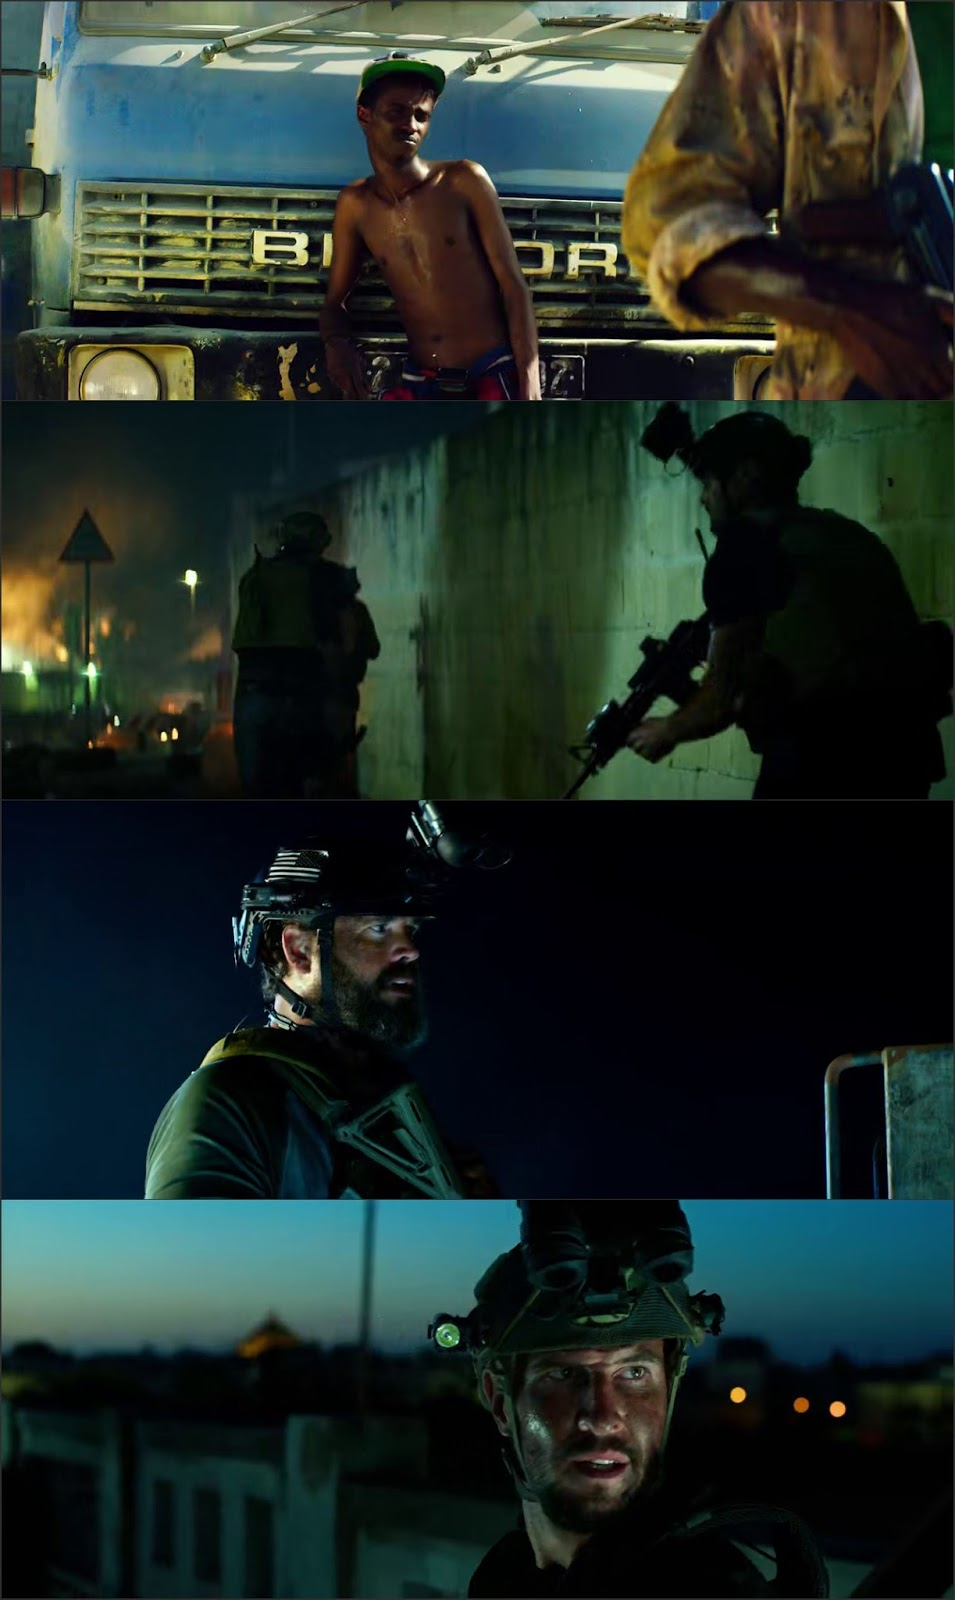 13 hours the secret soldiers of benghazi dual audio torrent